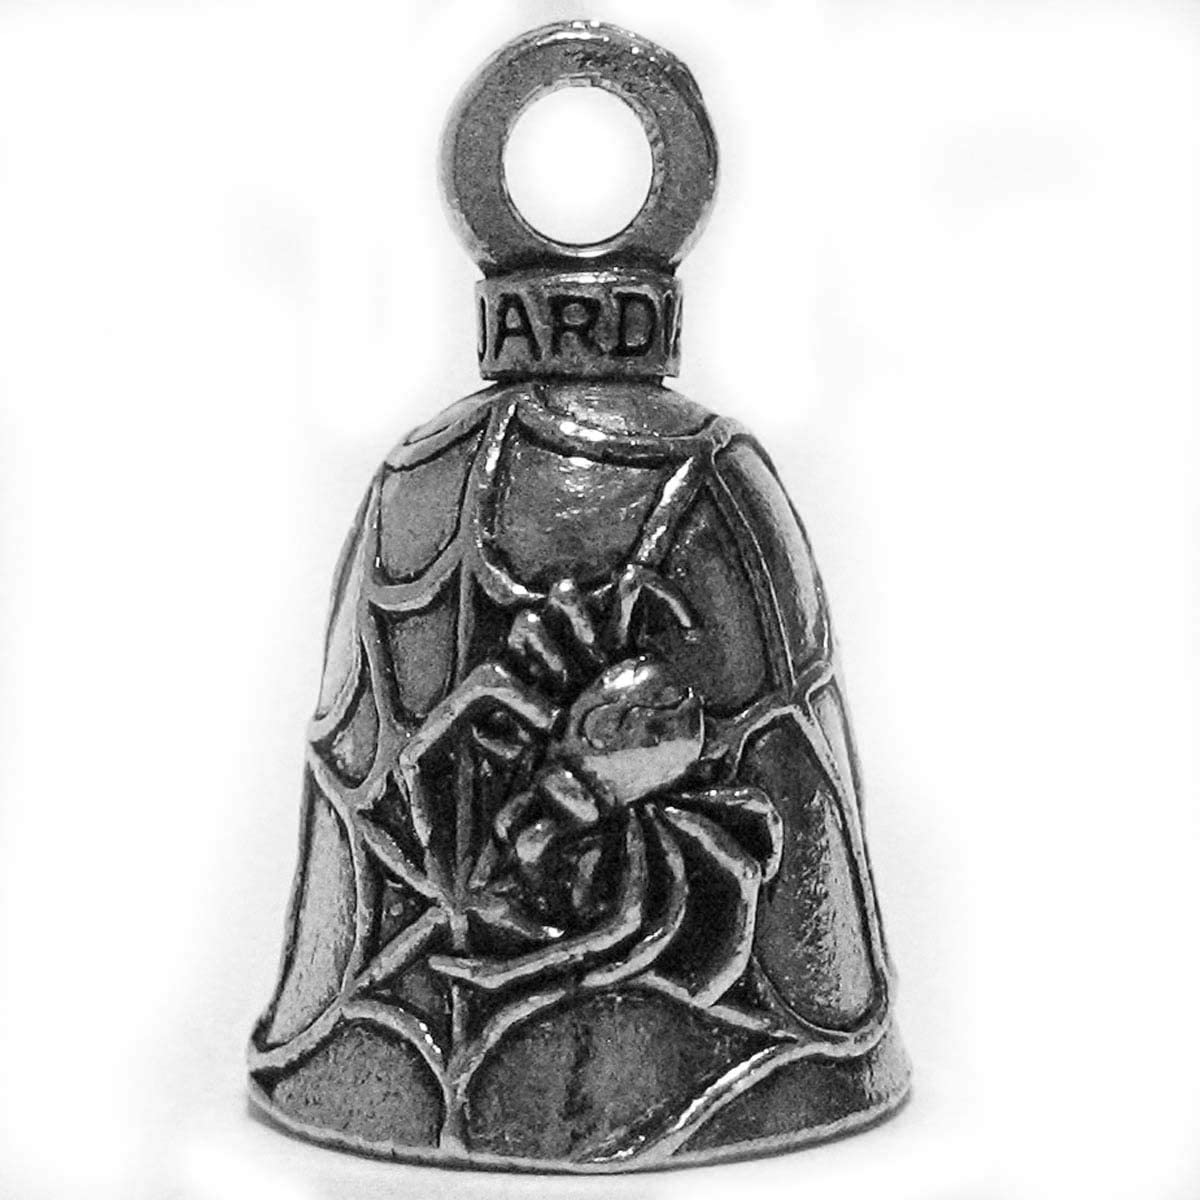 Trike Spiderweb Guardian Bell Motorcycle Harley Accessory HD Gremlin NEW Riding Bell Key Ring